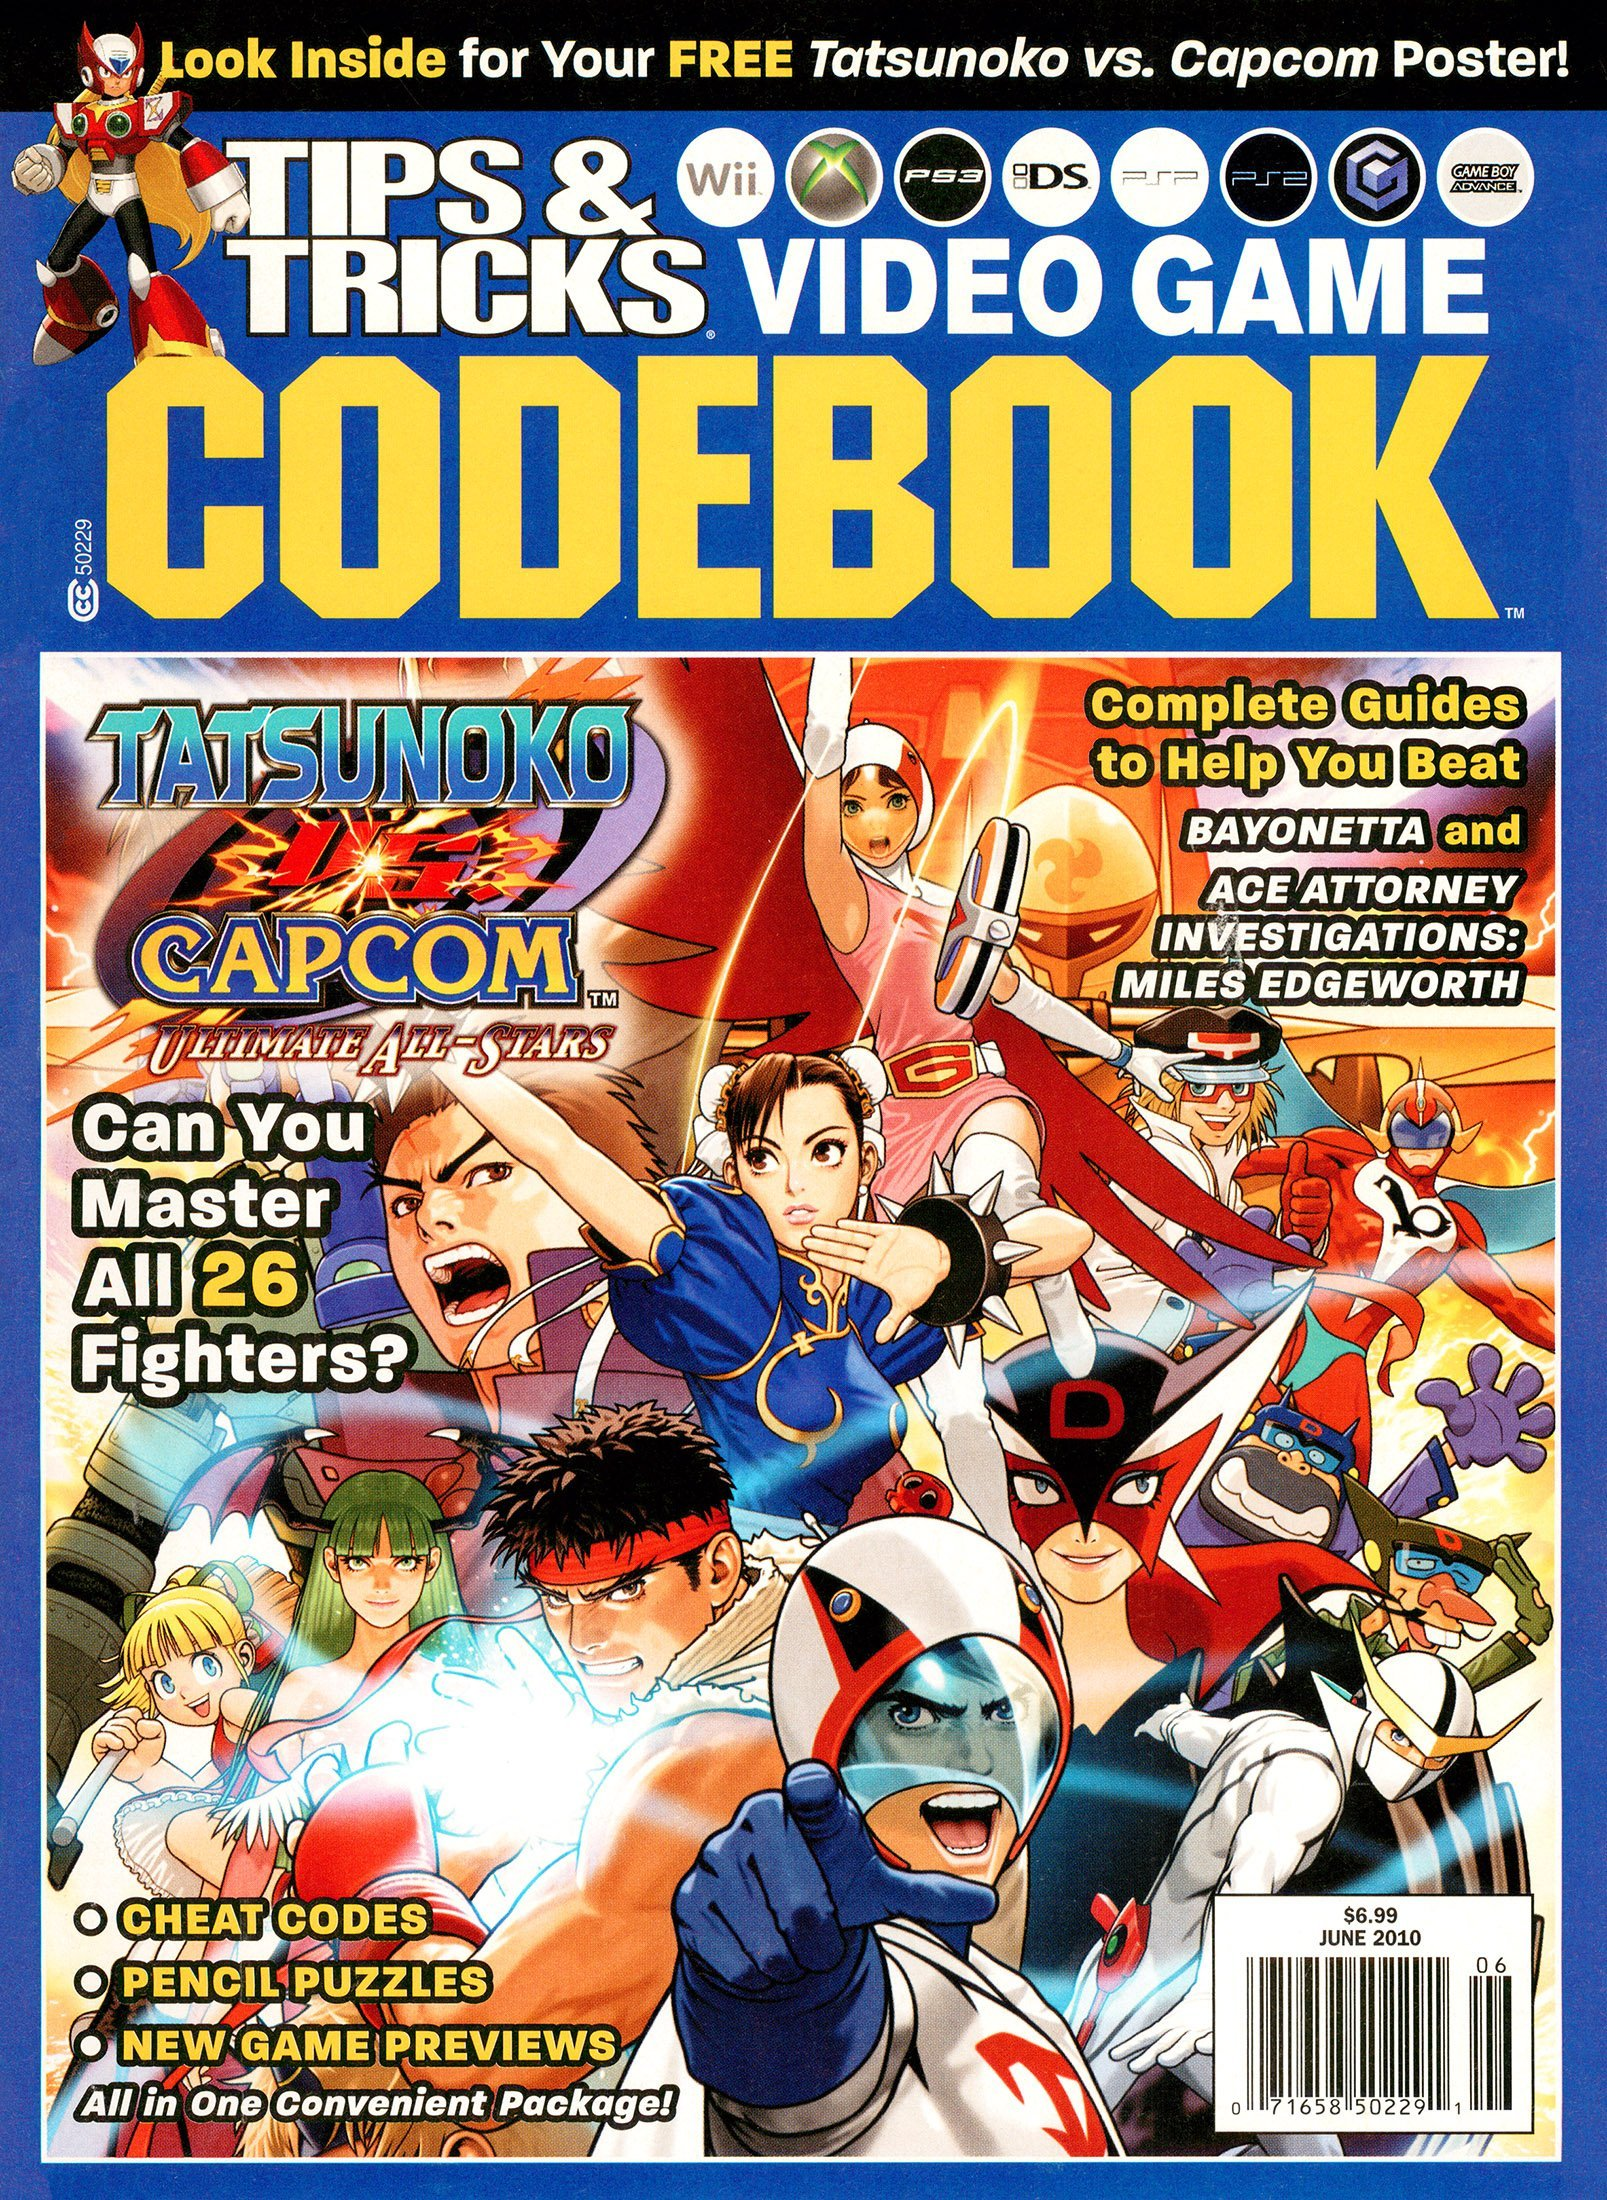 Tips & Tricks Video Game Codebook Volume 17 Issue 4 (June 2010)